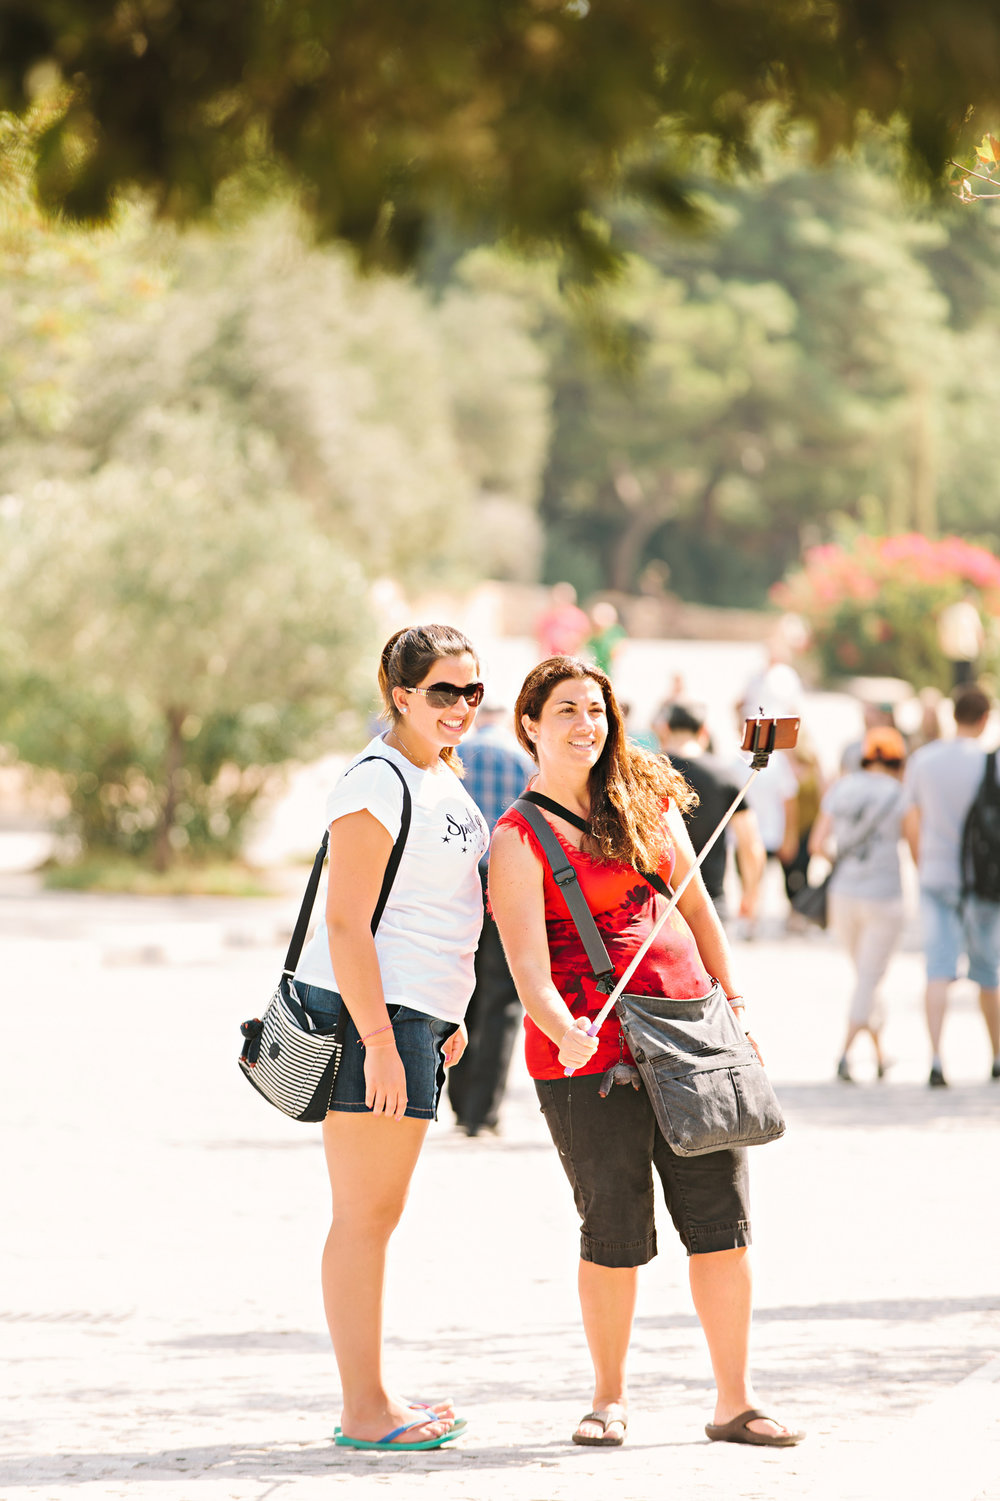 CindyGiovagnoli_Athens_Greece_travel_photographer-049.jpg